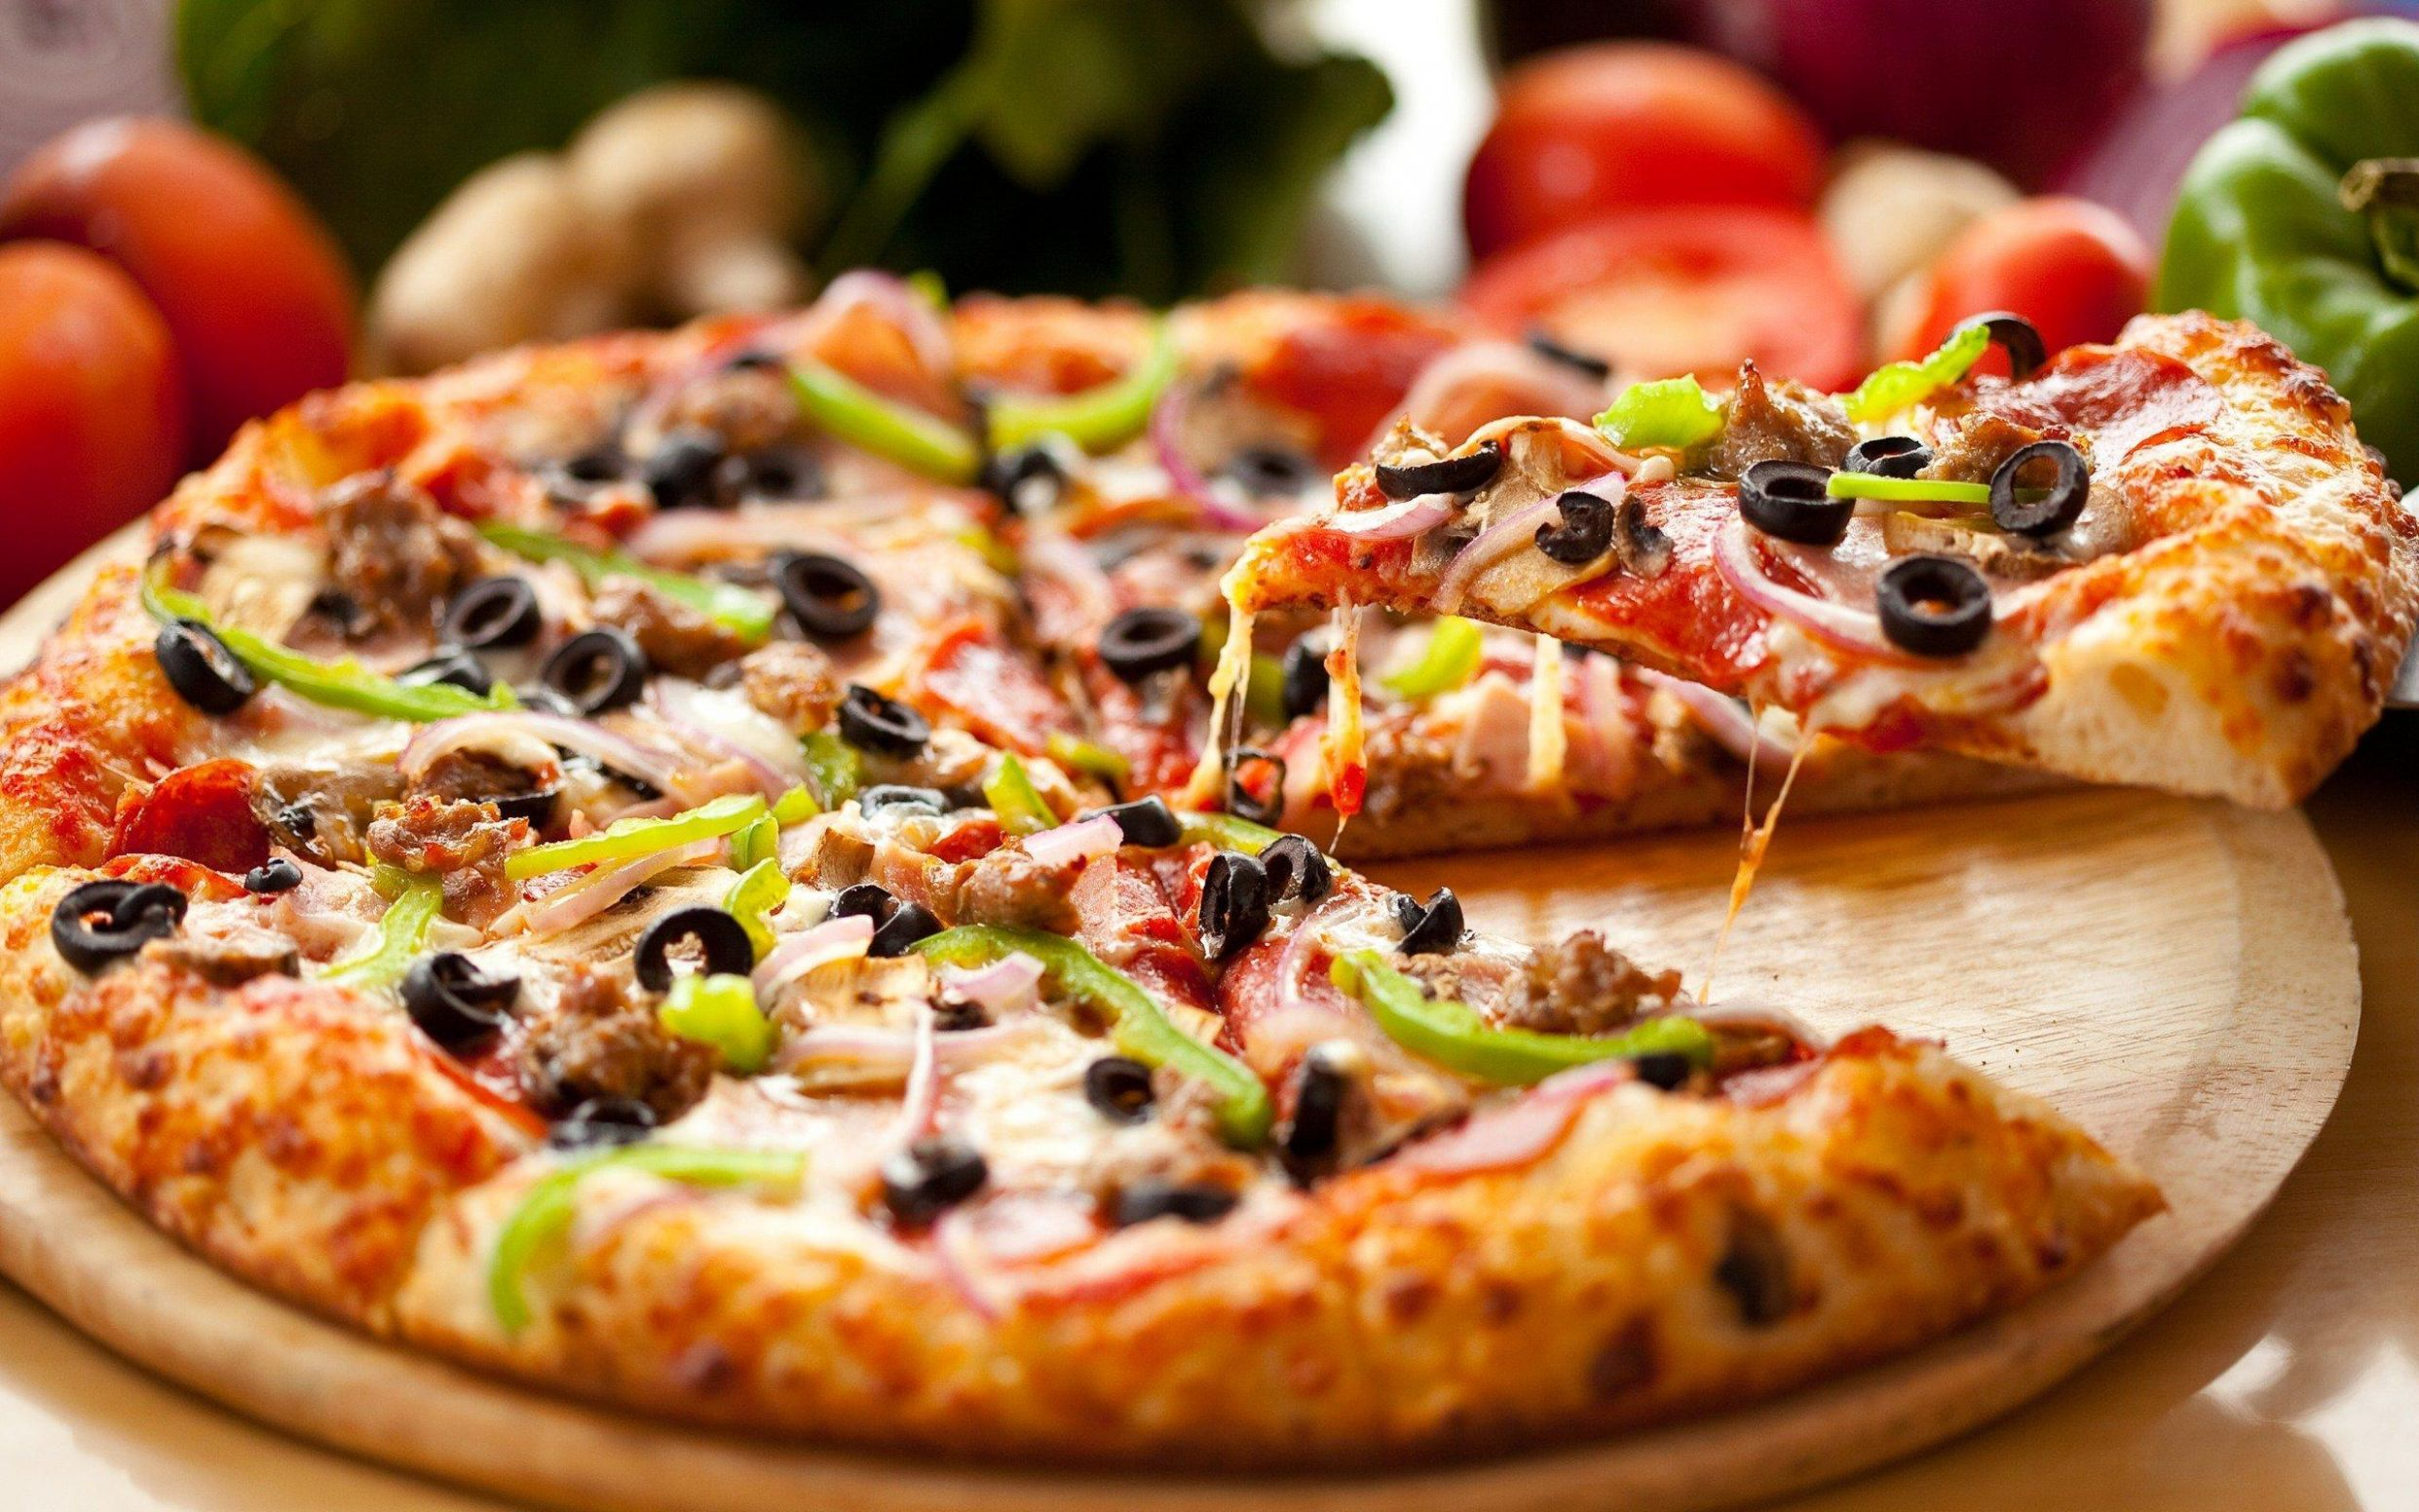 Delicious Pizza Recipes for Android - APK Download - Pizza Recipes Download